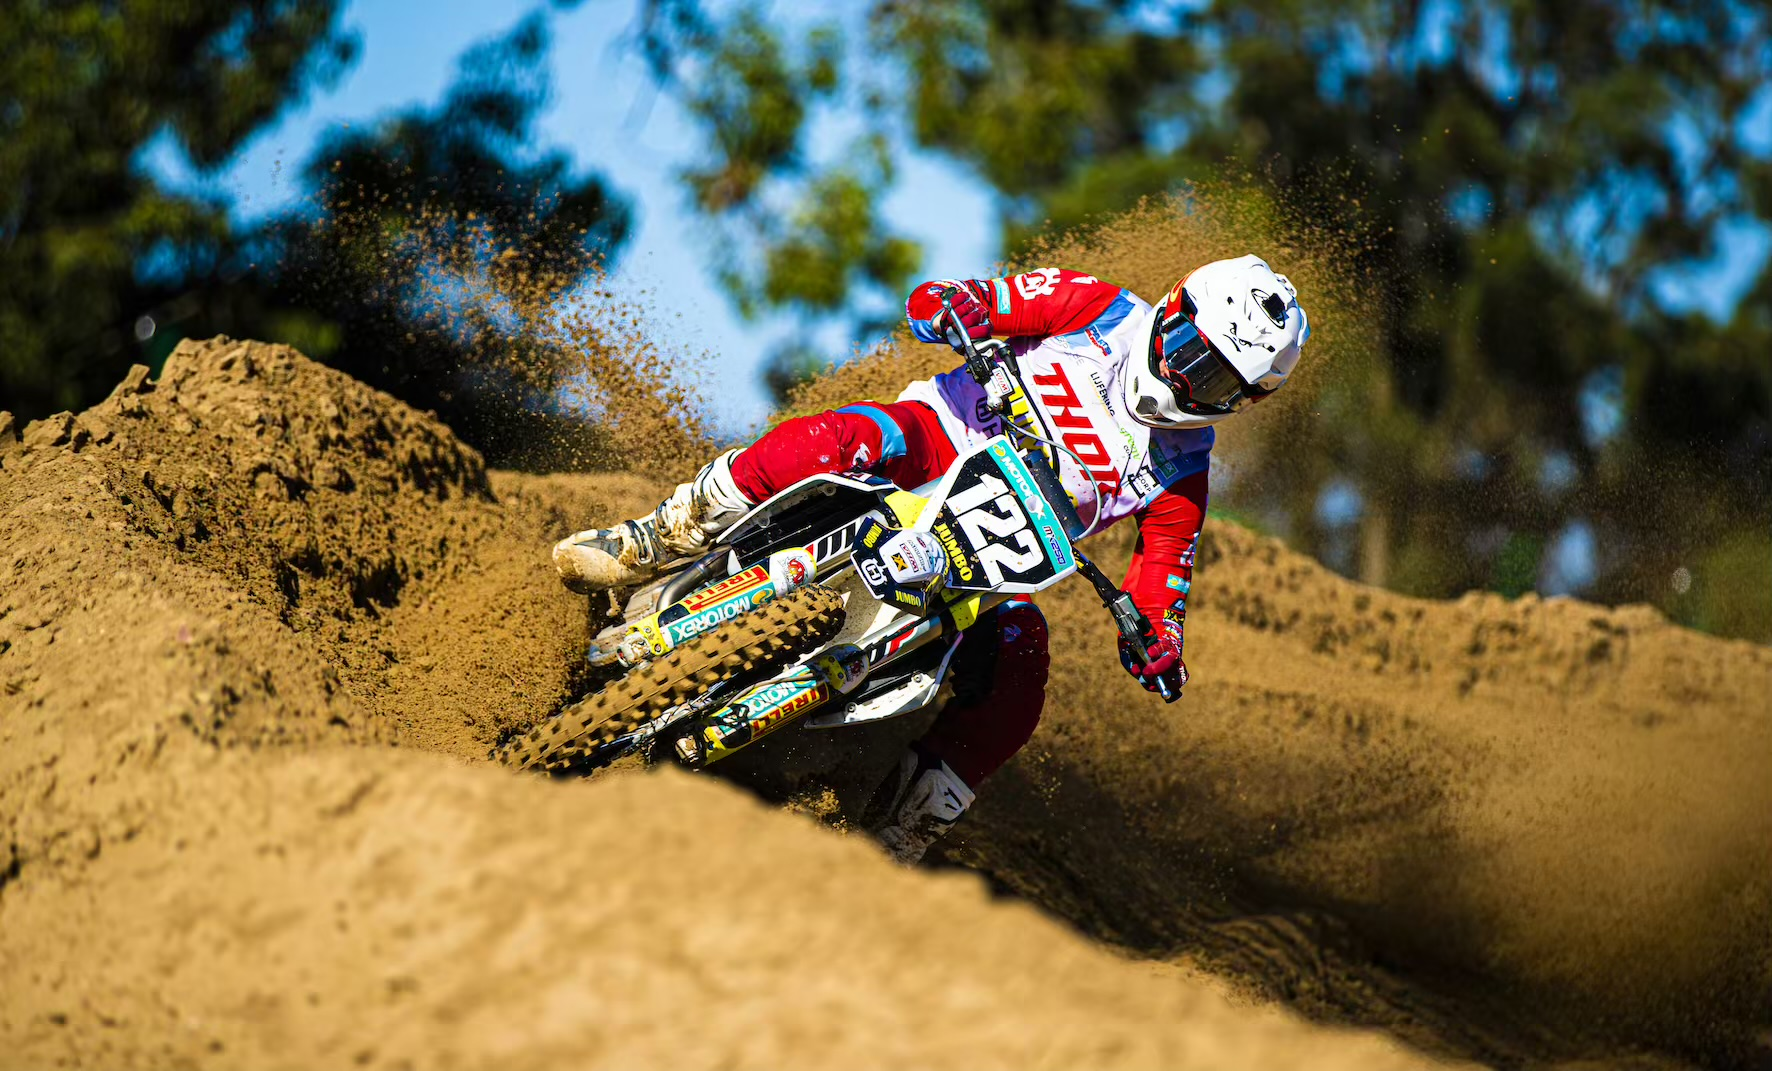 Camden McLellan racing Round 2 of the 2021 South African National Motocross Championship